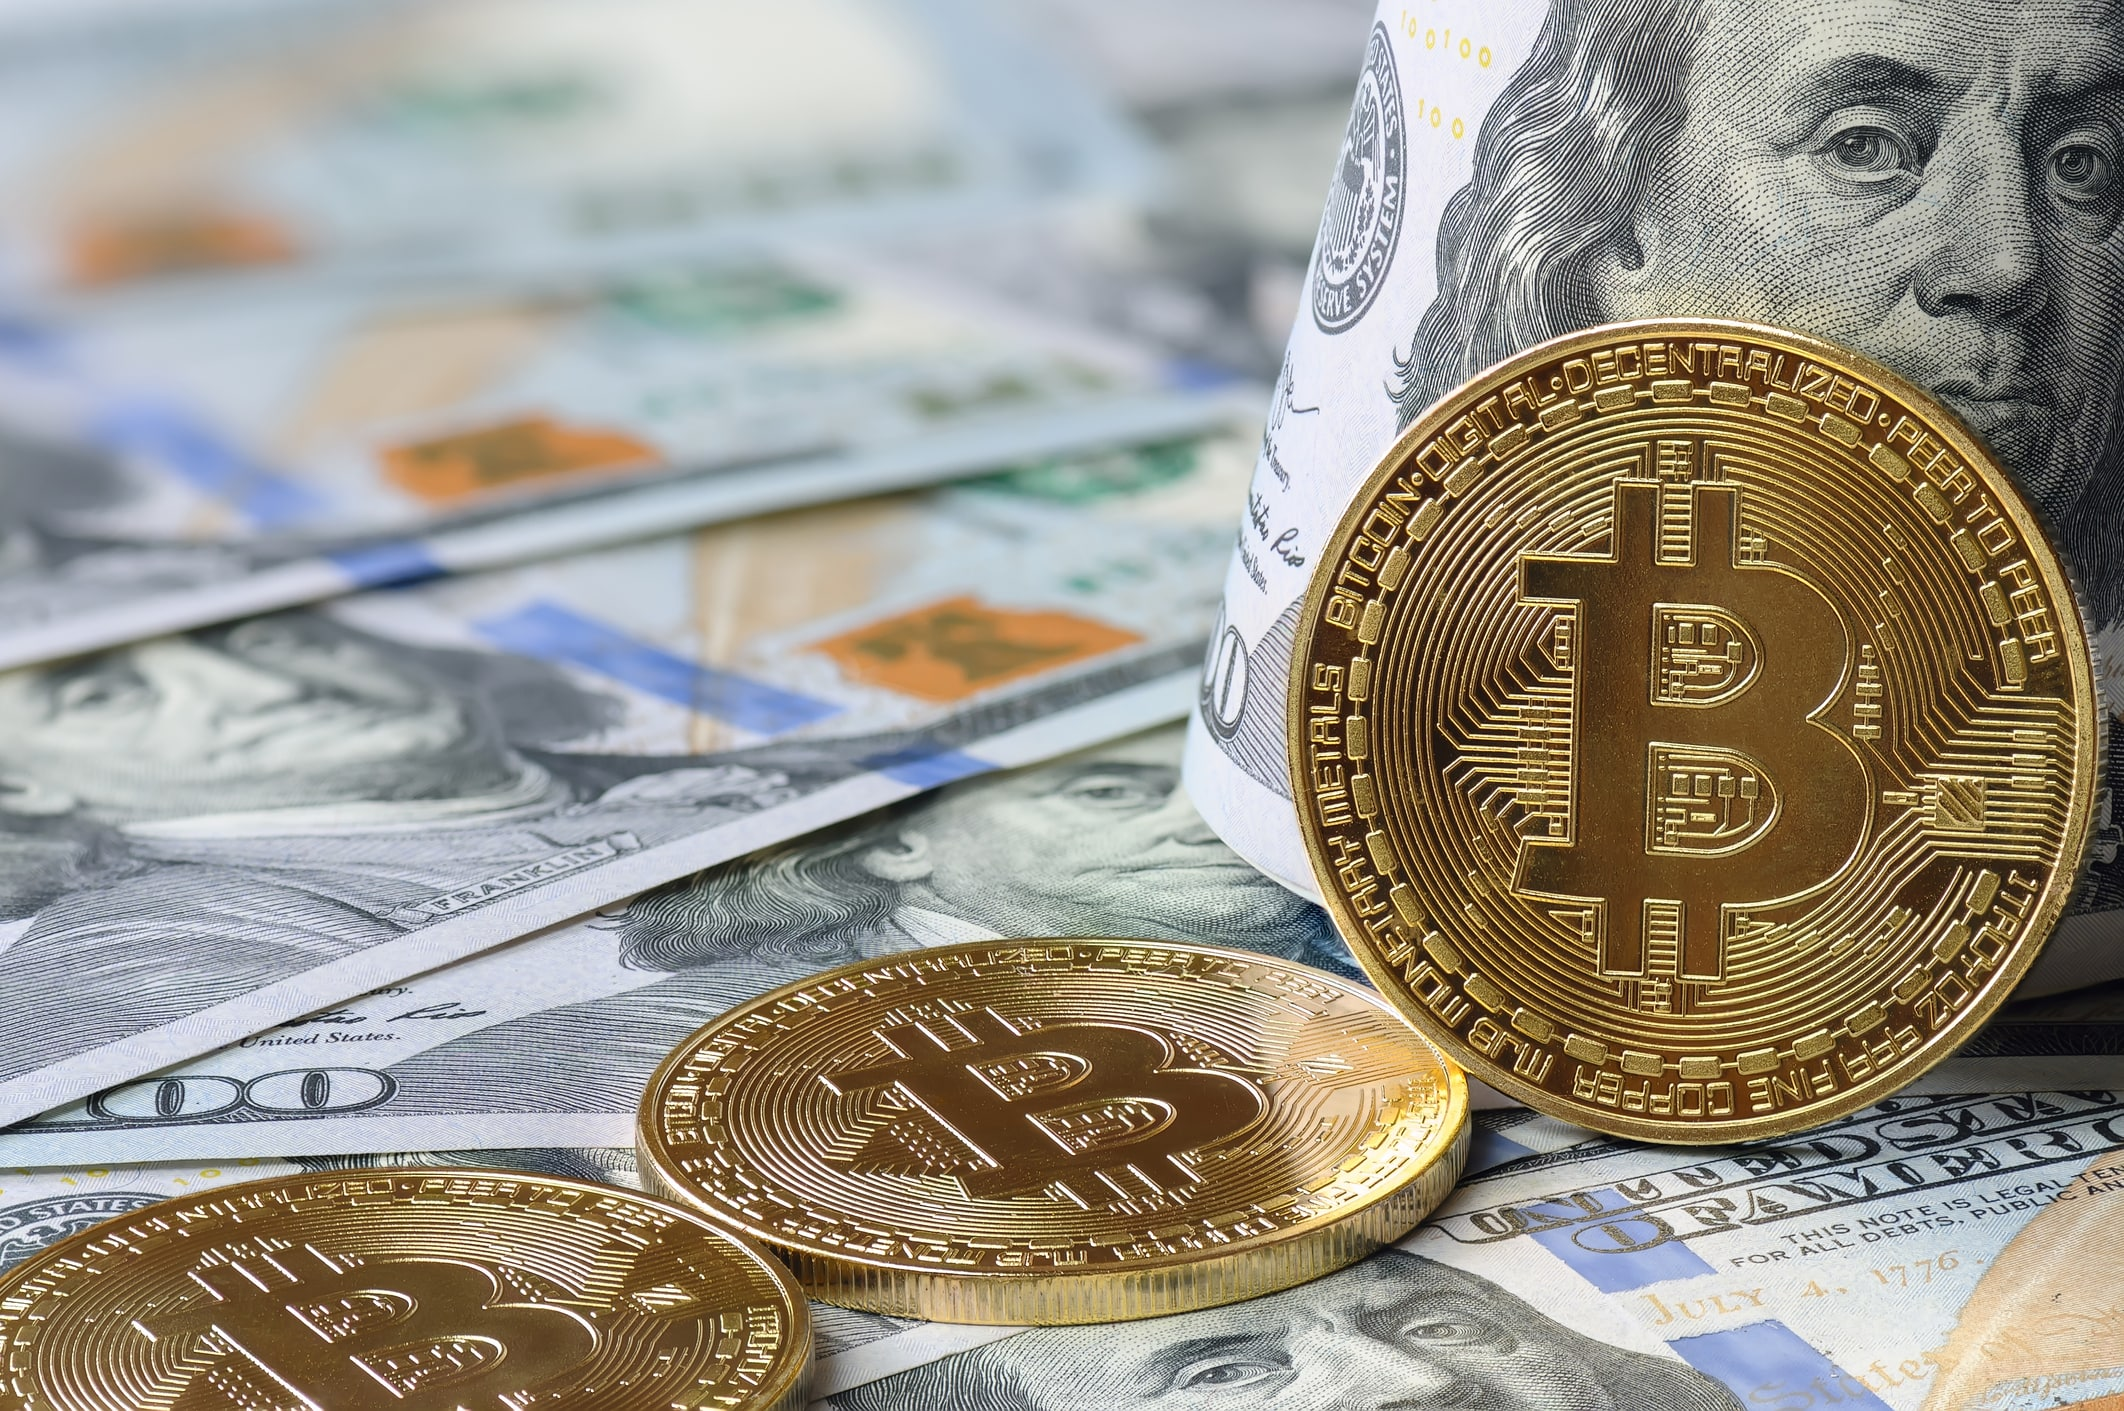 How much should I Invest in Bitcoin?